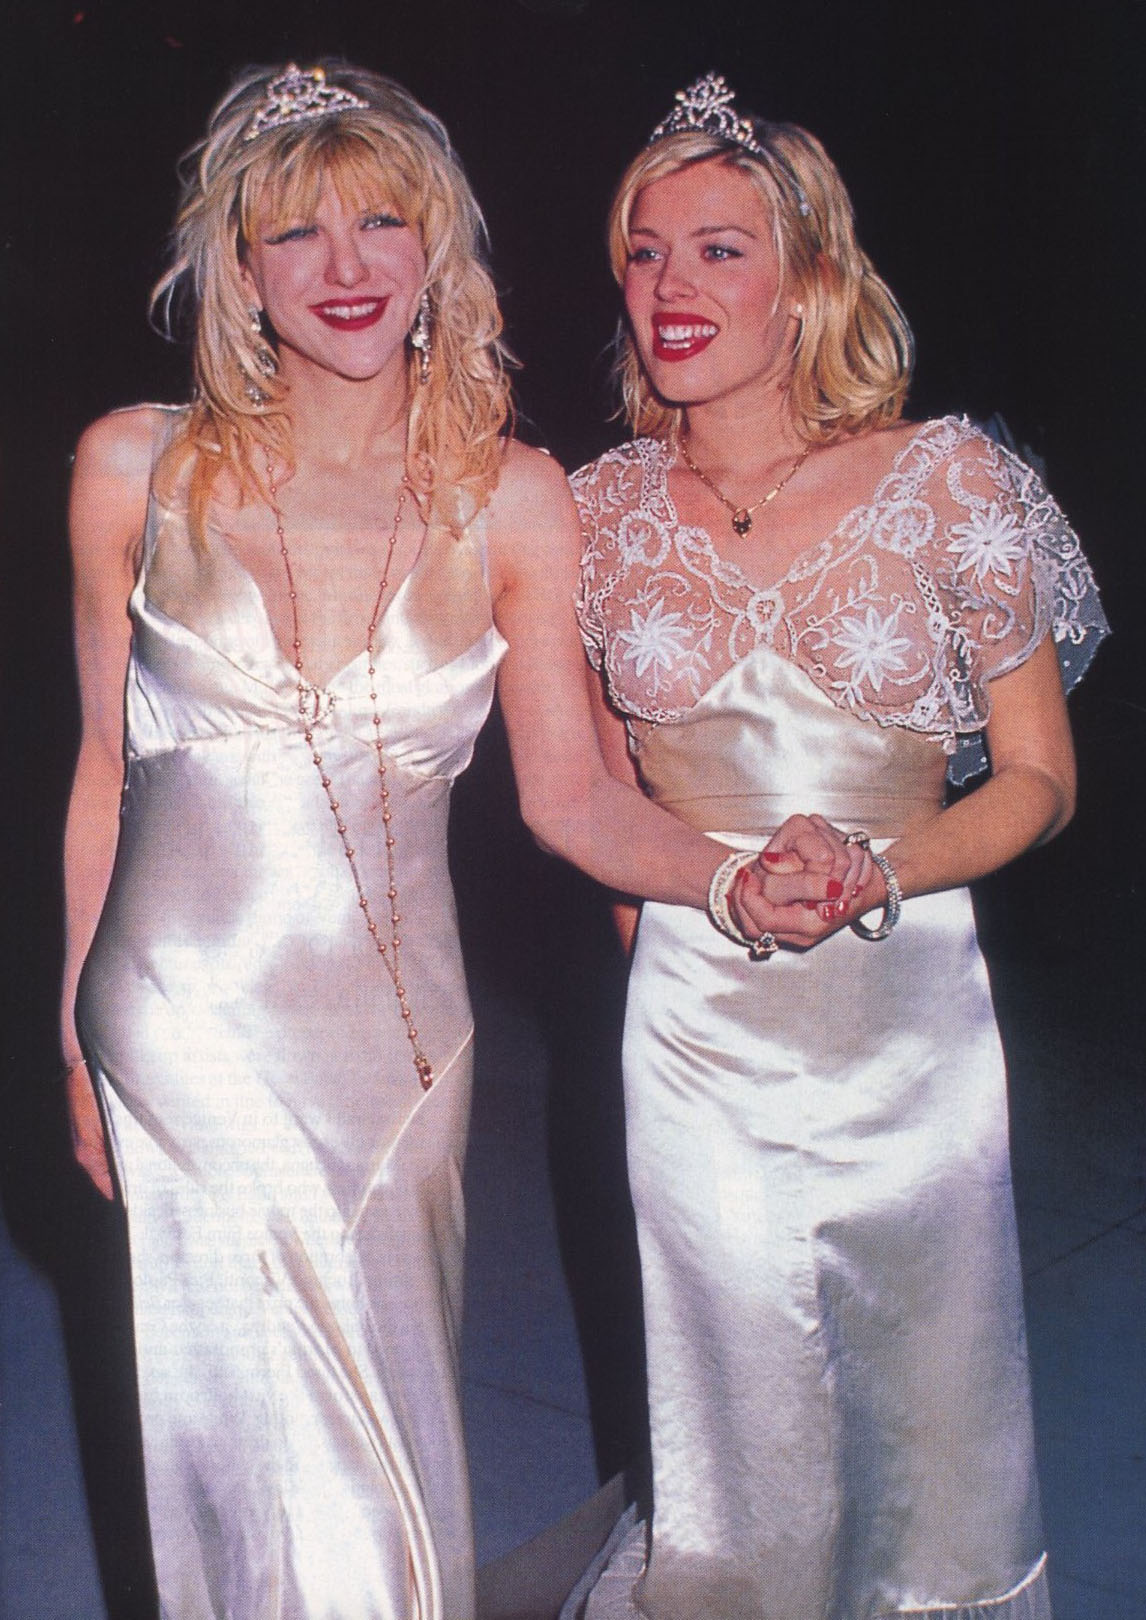 COURTNEY LOVE AND AMANDA DE CADENET | OSCAR PARTY | 1995 | VOGUE US | DECEMBER 1997